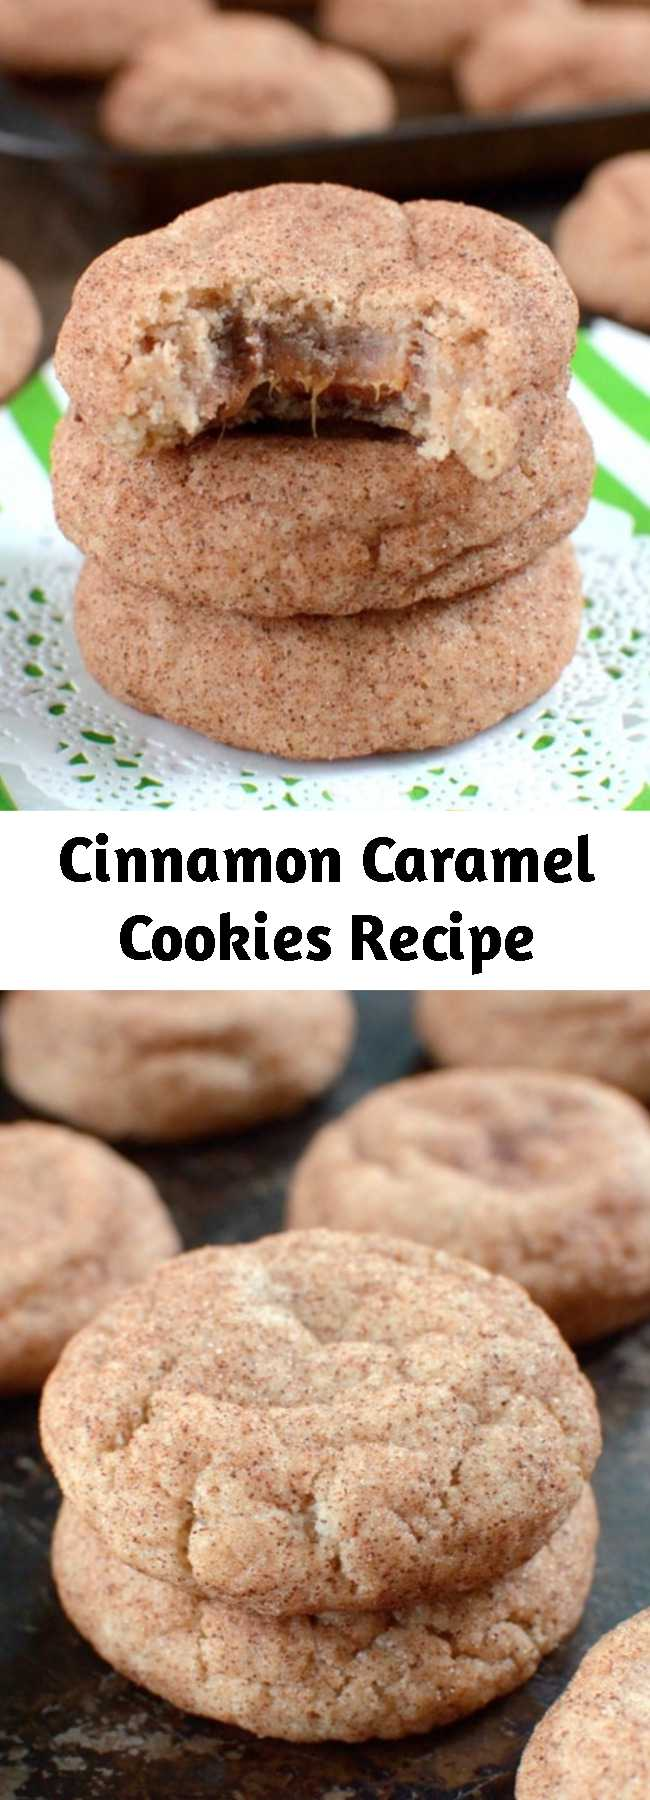 Cinnamon Caramel Cookies Recipe - These hidden candy center in these Cinnamon Caramel Cookies will make everyone smile when they find it. Fill your cookie jar with a batch today!